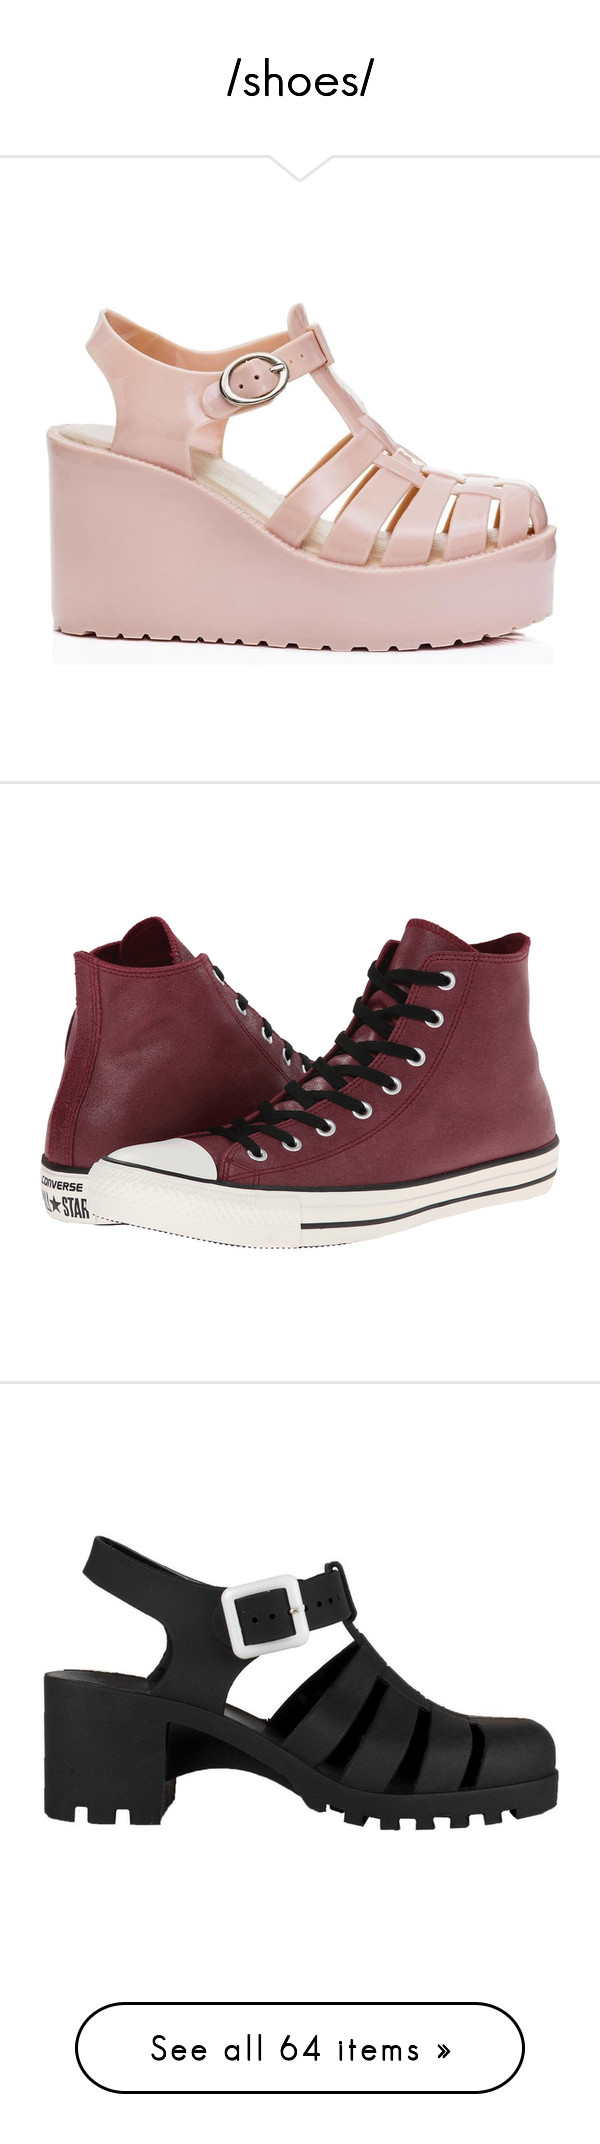 """""""/shoes/"""" by simplykristin on Polyvore featuring shoes, flatform shoes, jelly wedge shoes, famous footwear, buckle shoes, platform wedge shoes, sneakers, converse, burgundy and print shoes"""